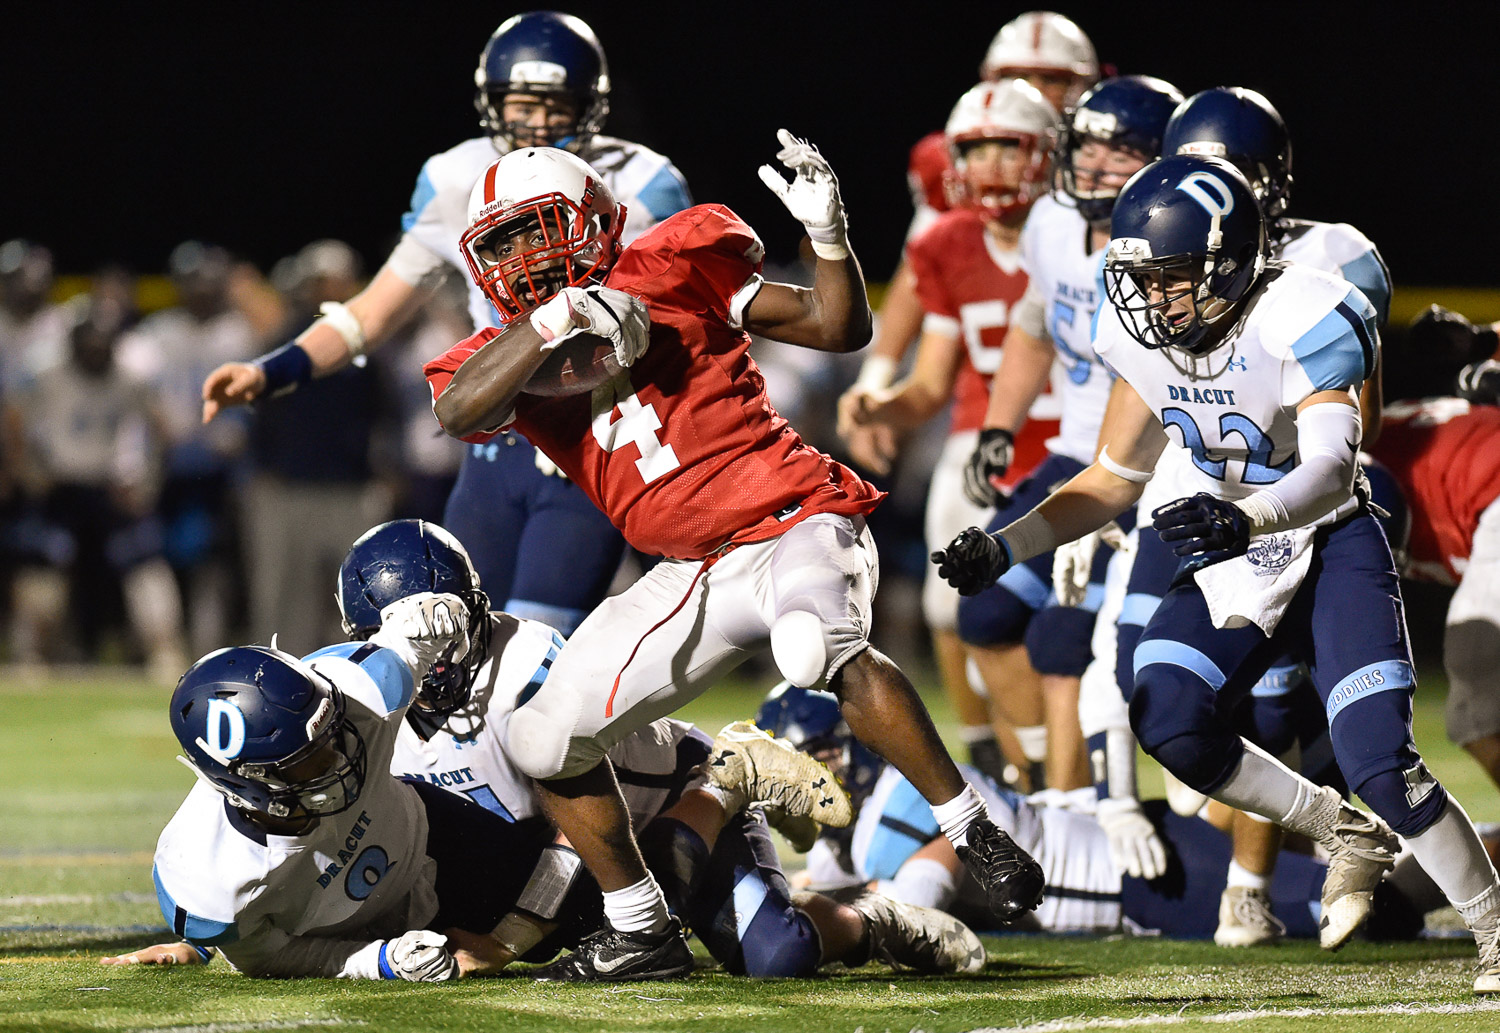 Nikon D4s, 1/1250 @ f/2.8, ISO 8000, 300mm  Isaac Seide of Melrose breaks free from a tackle while running the ball during their 14-10 win over Dracut at Melrose High School, Friday, Oct. 27, 2017.